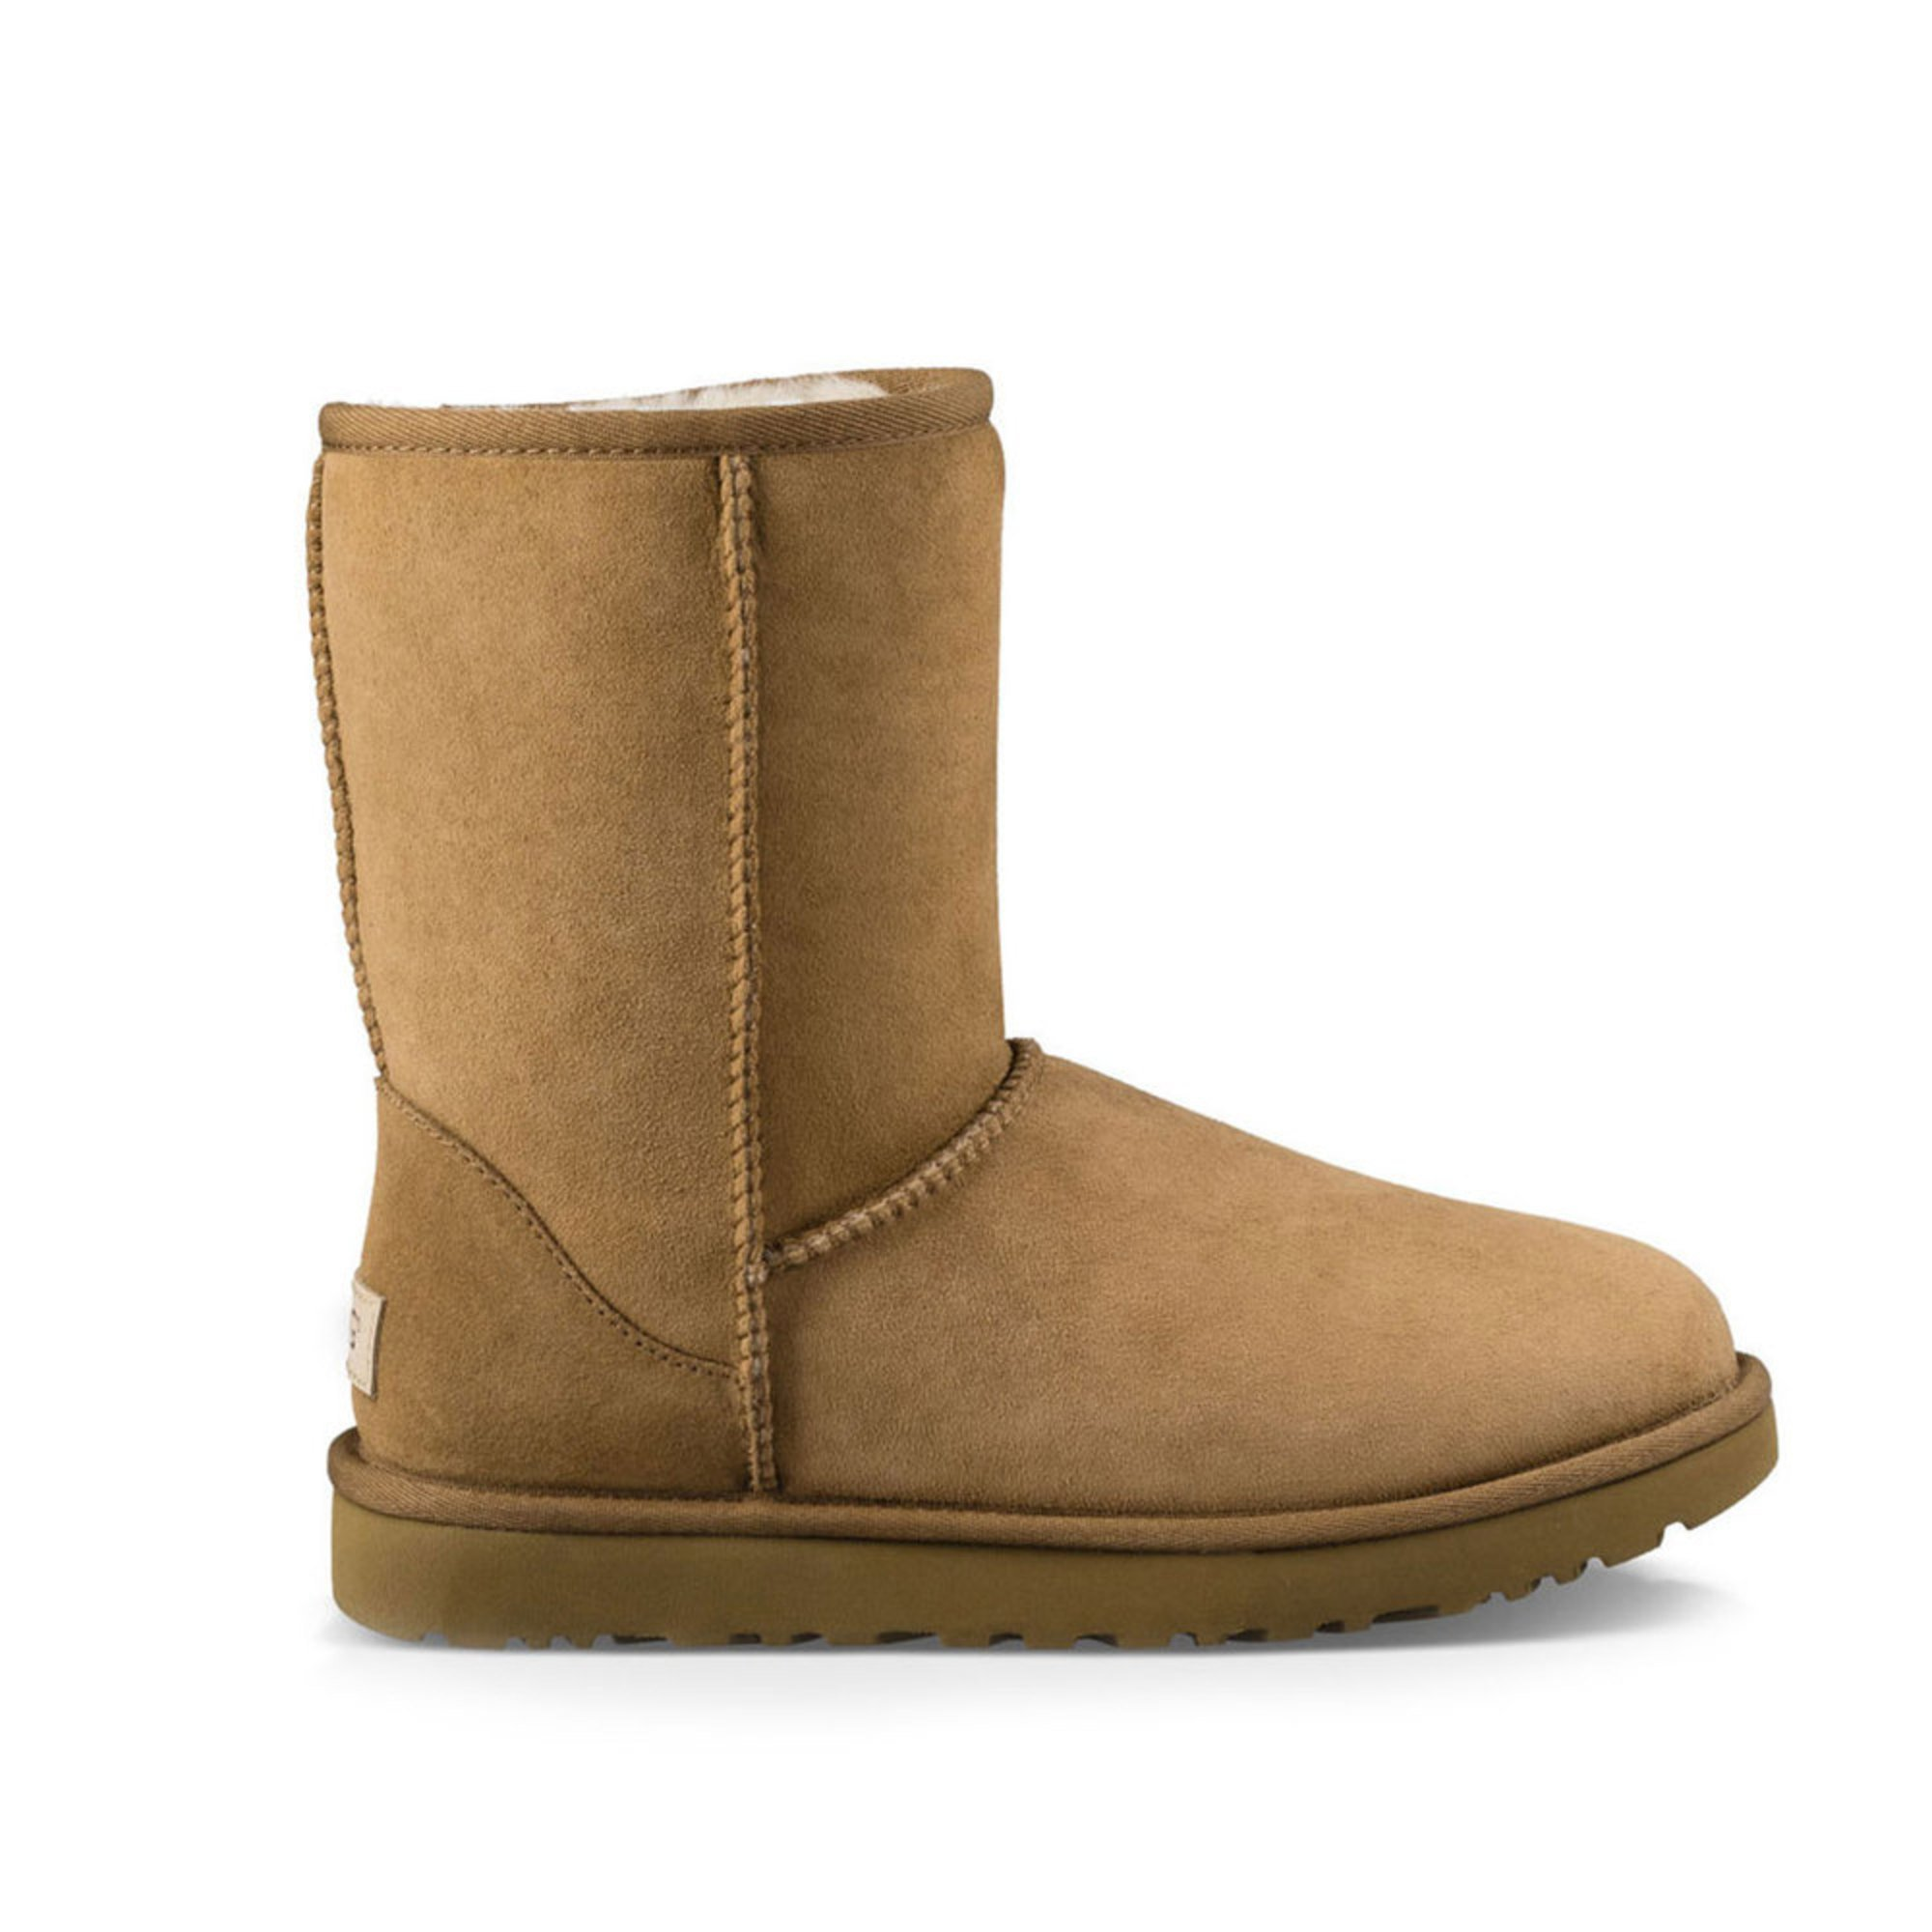 a5808b87be5 Ugg Women's Classic Short II Casual Boot